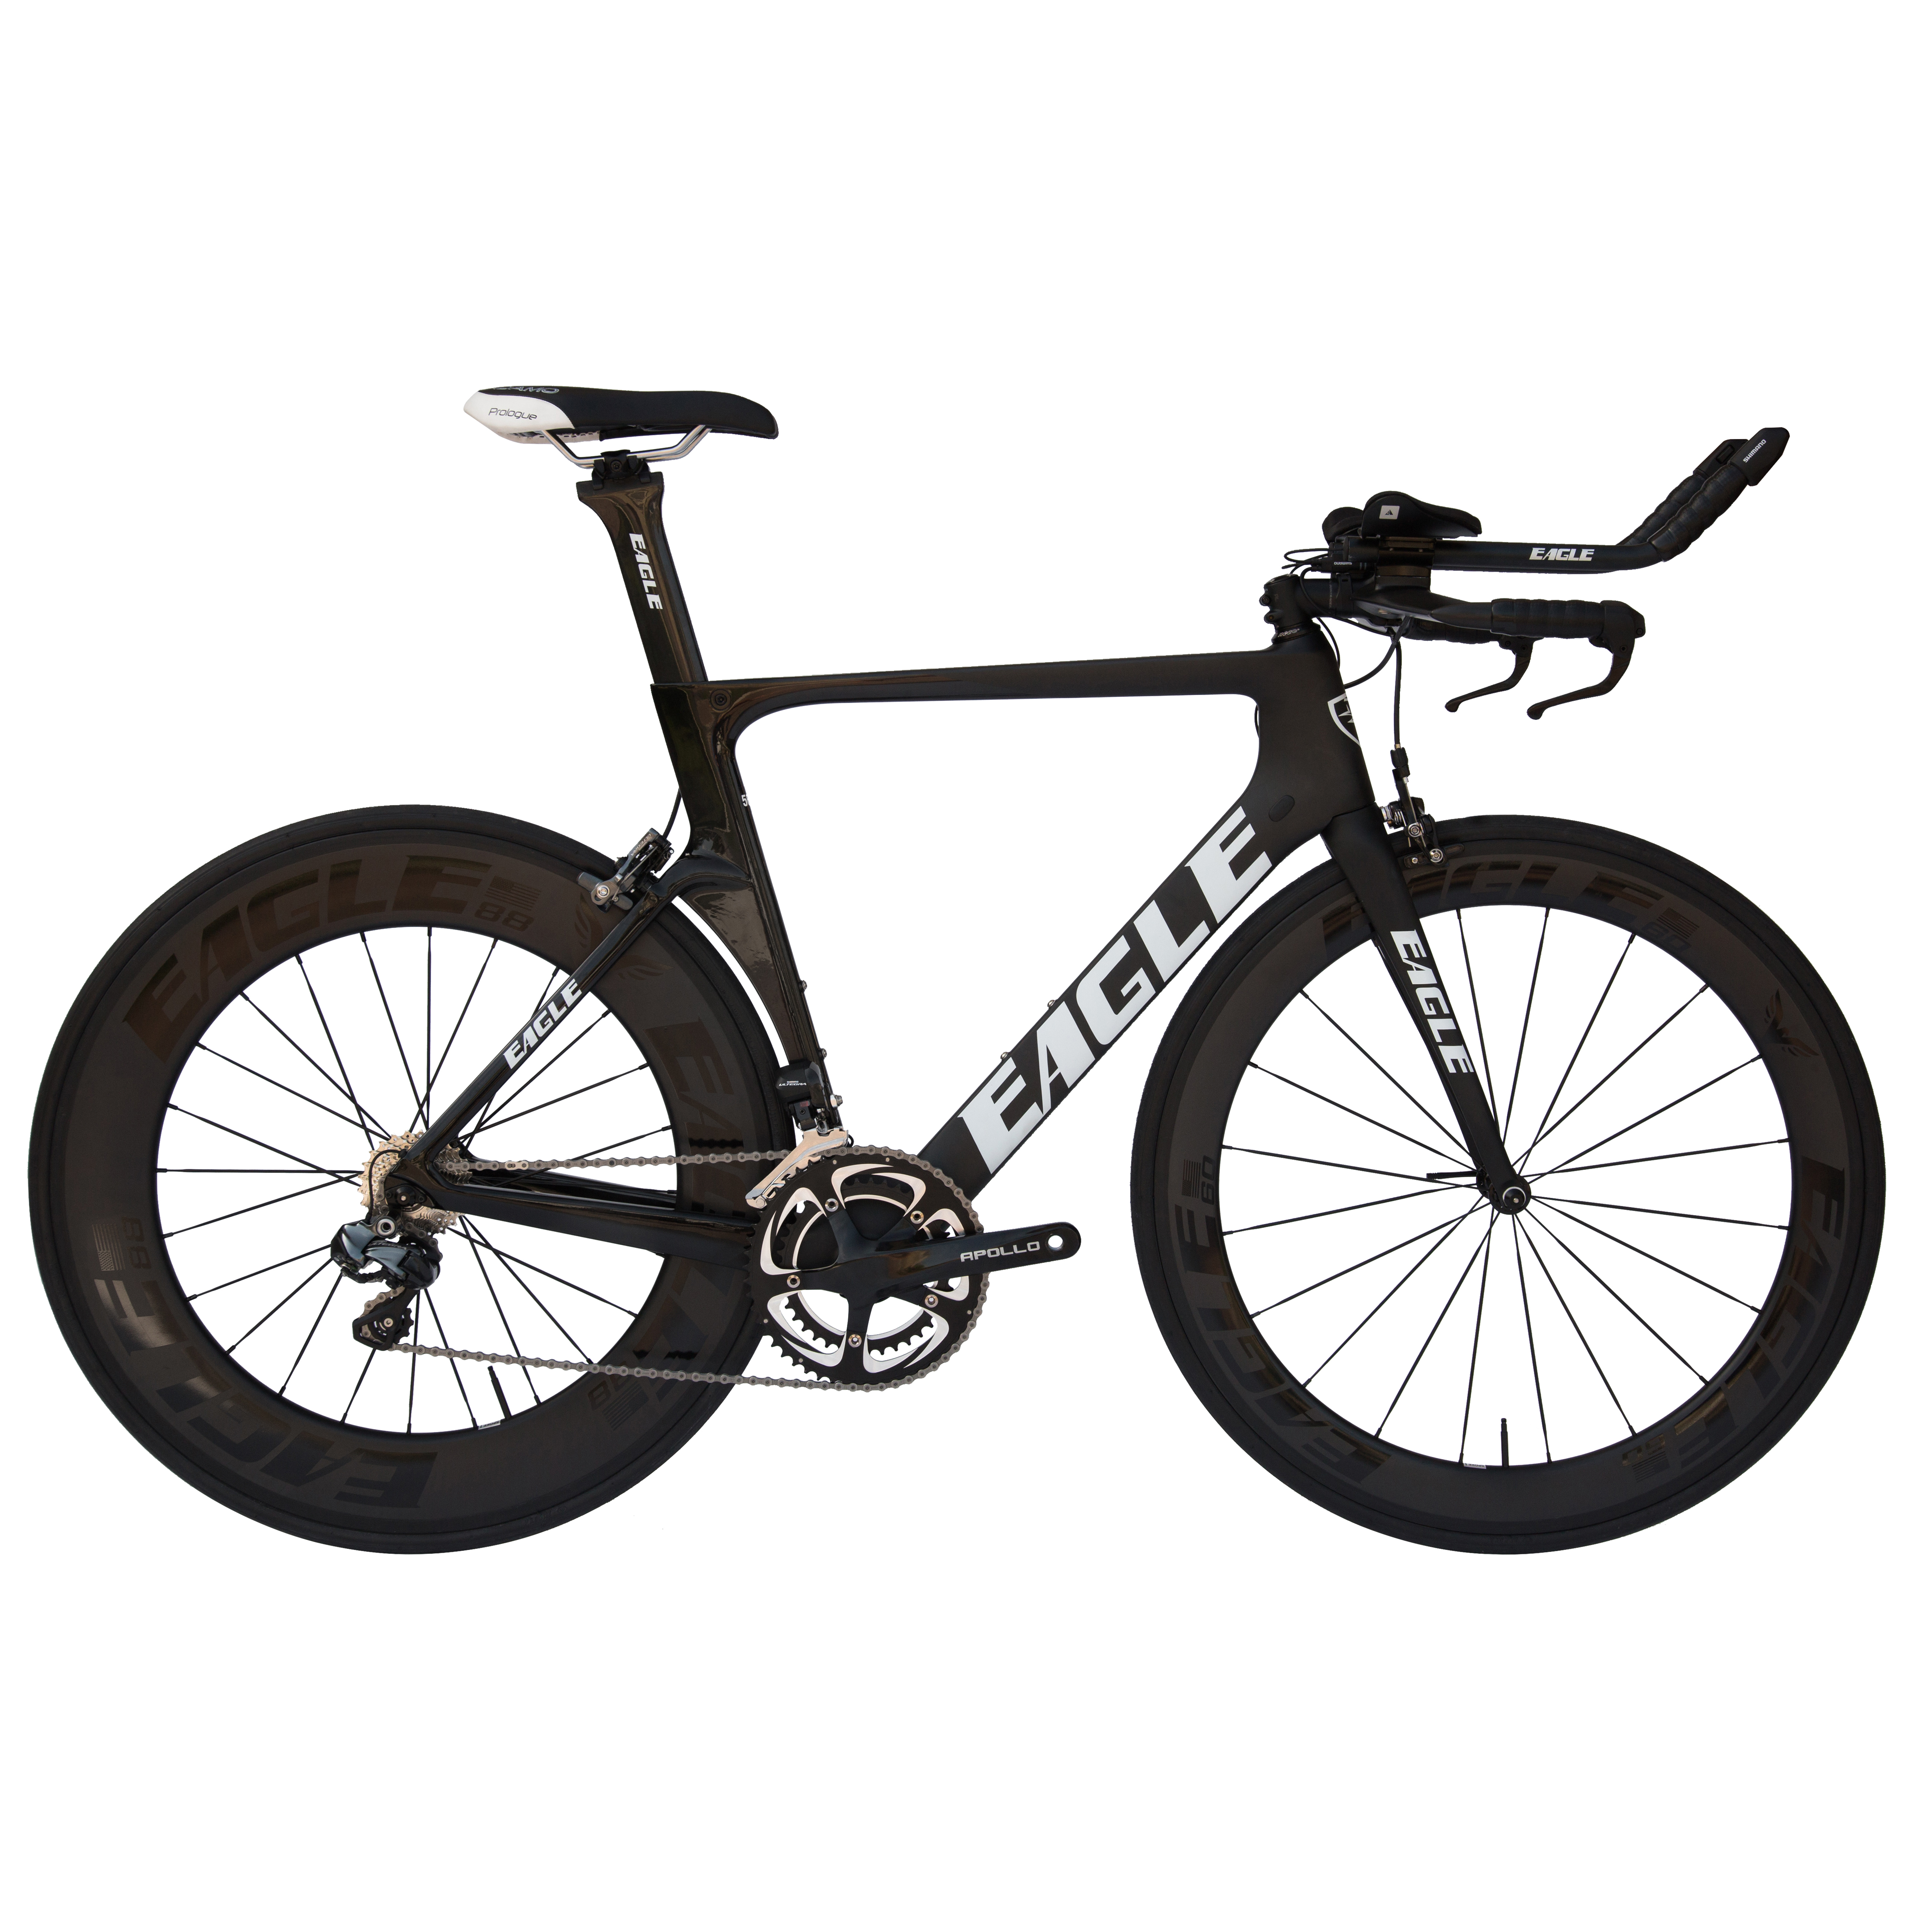 Eagle T3 Carbon Fiber Triathlon Bike - Ultegra Di2 | Eagle Bicycles